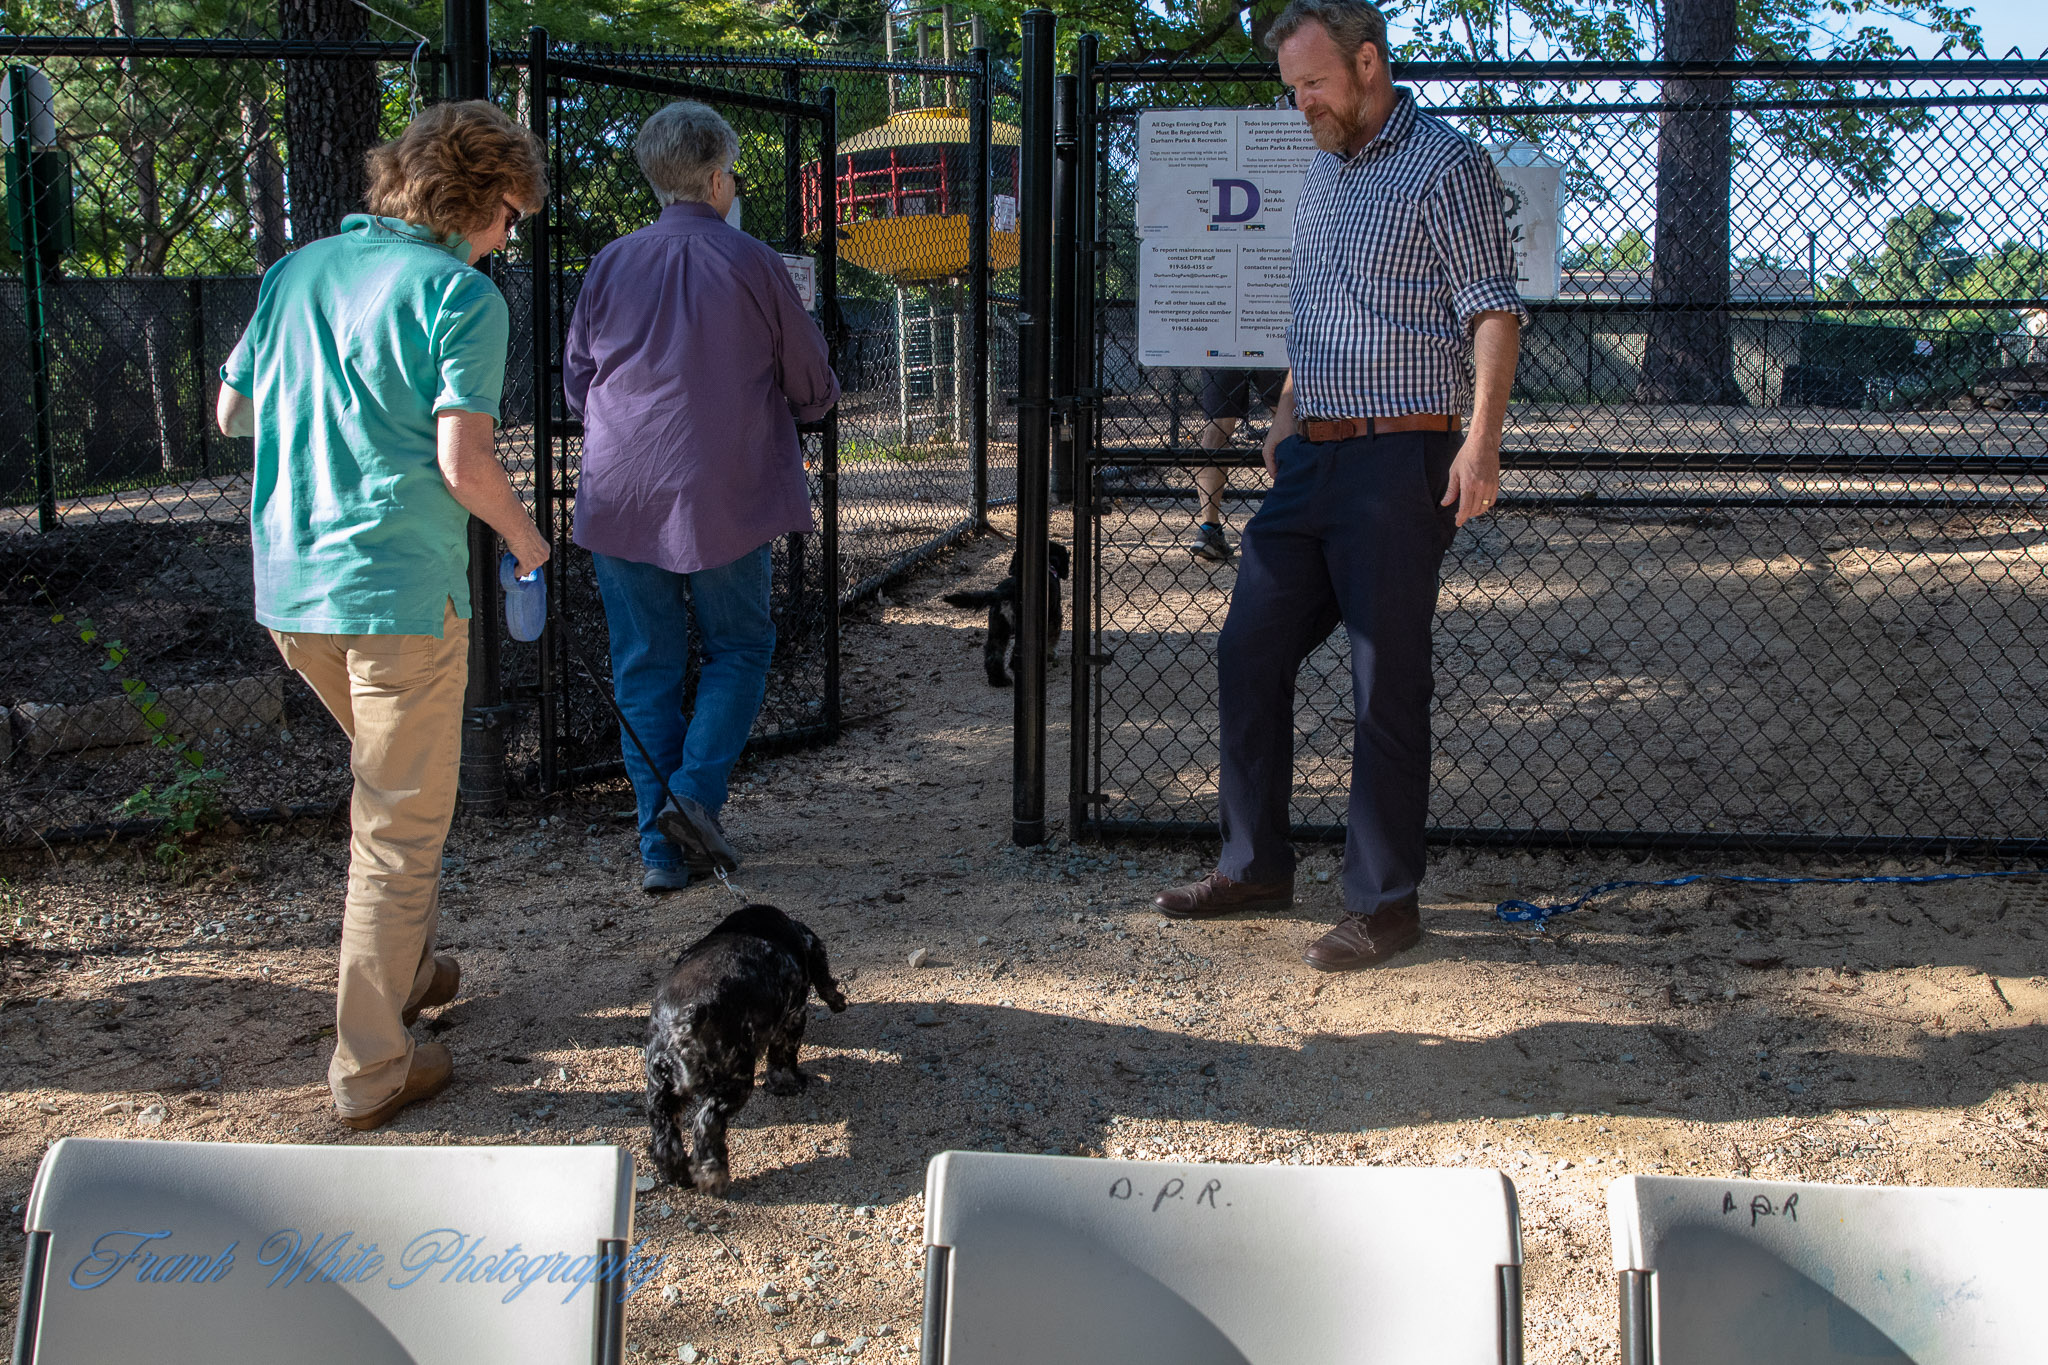 Duke-Dog-Park---Official-opening-135.jpg